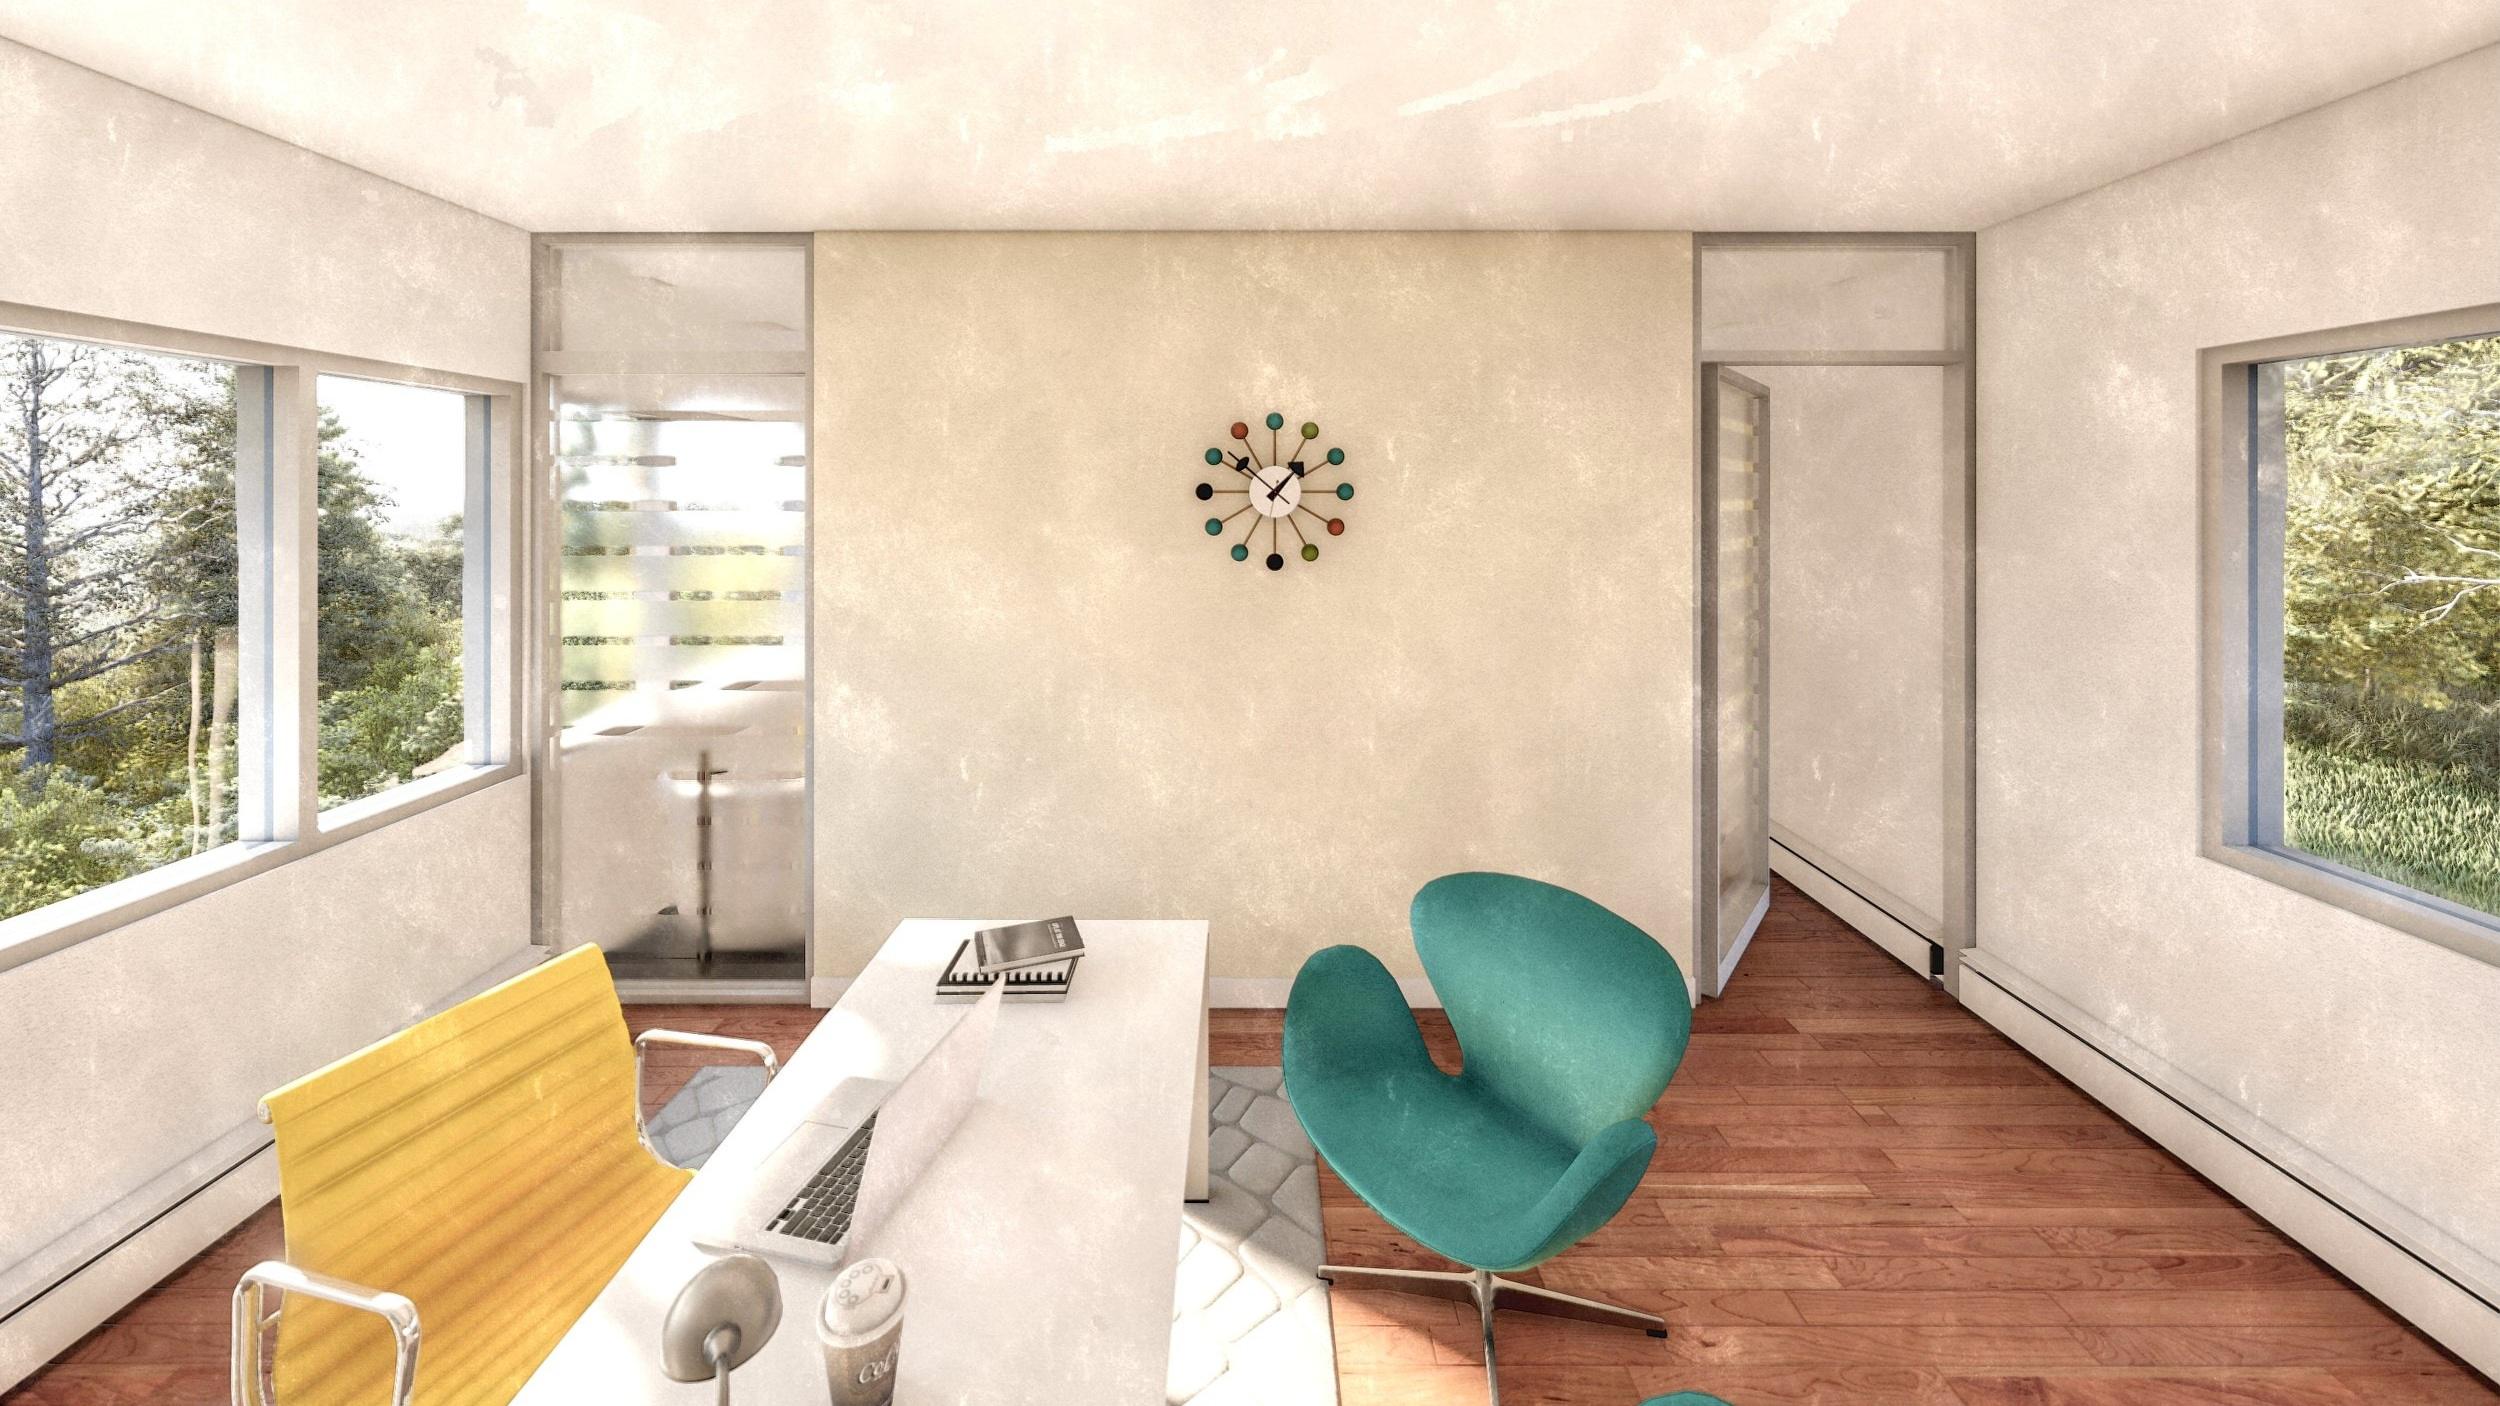 MidCentury Master Suite__Option 1 - Study View 1_FotoSketcher.jpg